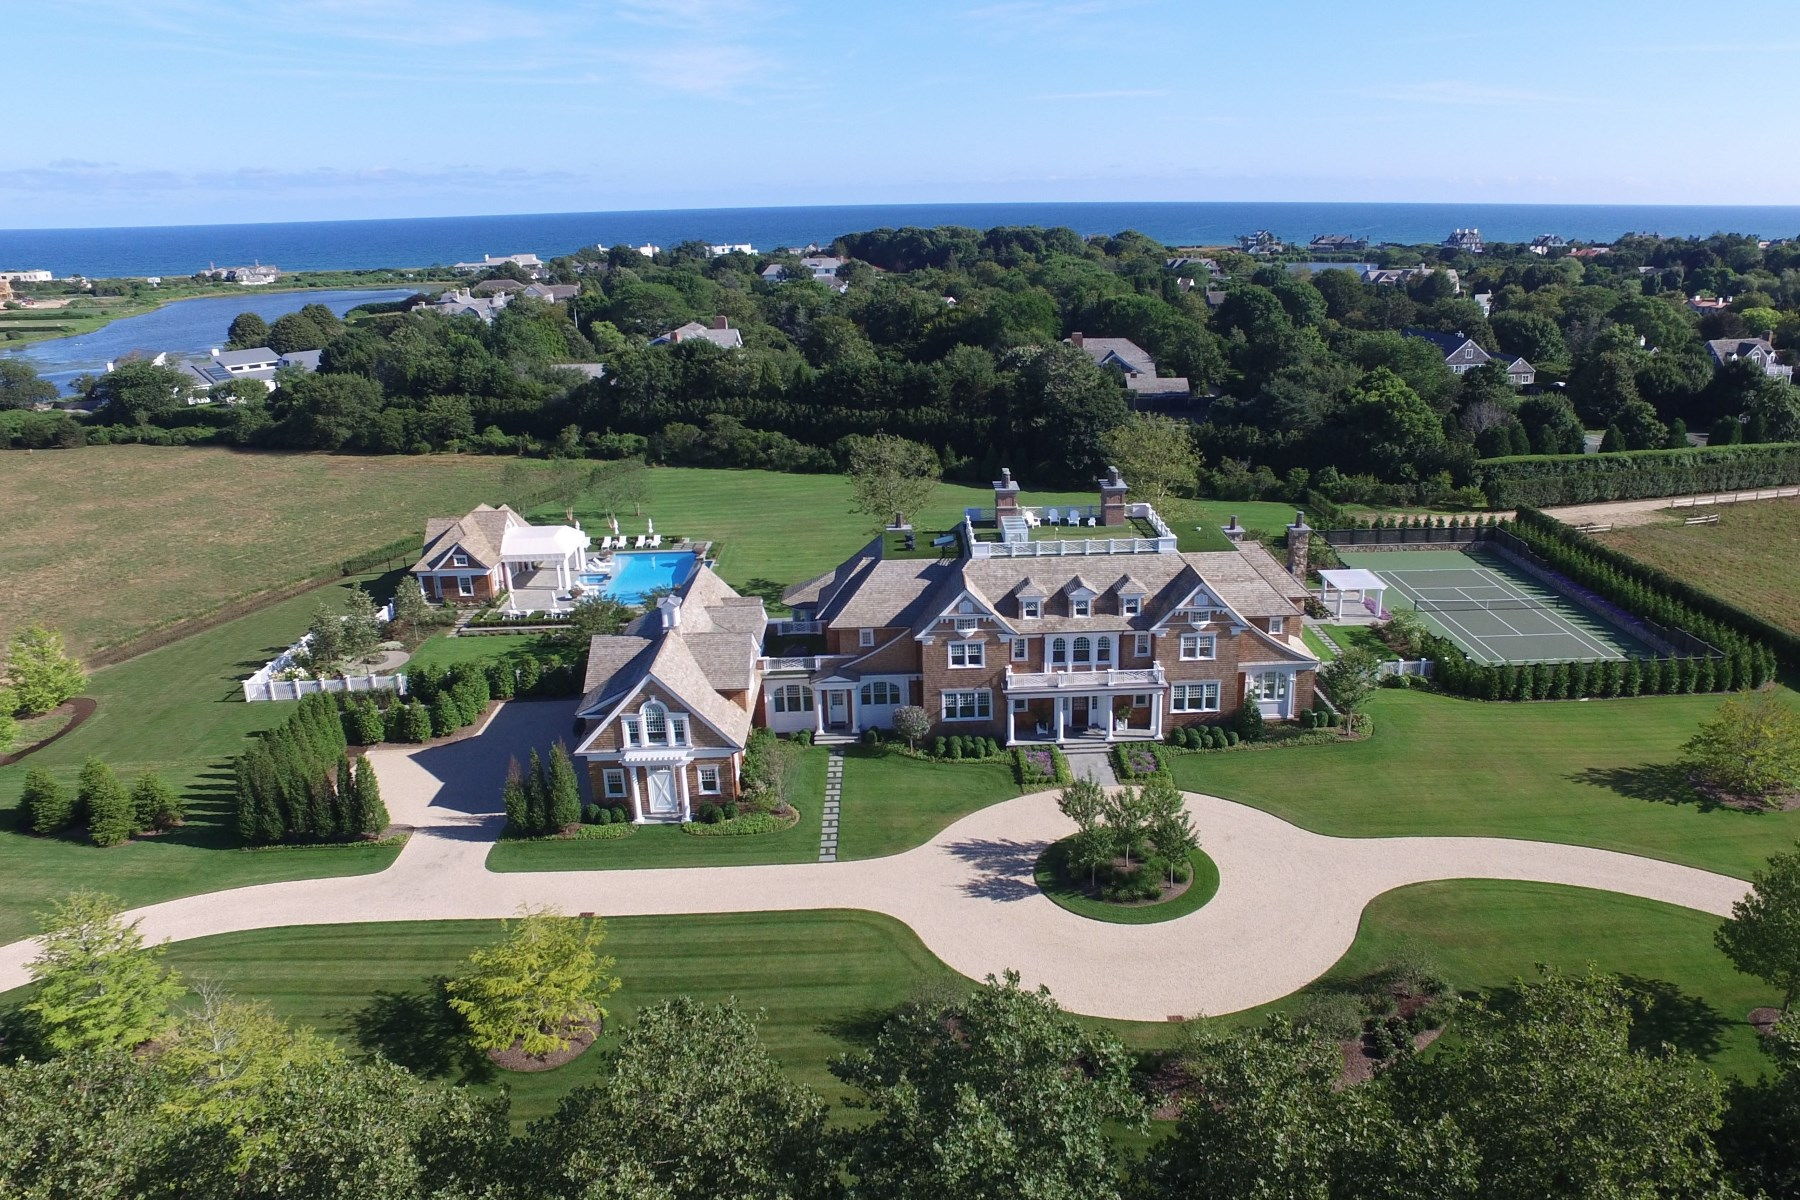 Single Family Home for Sale at Twin Peaks Luxury Estate 9 Olde Towne Lane Southampton, New York 11968 United States